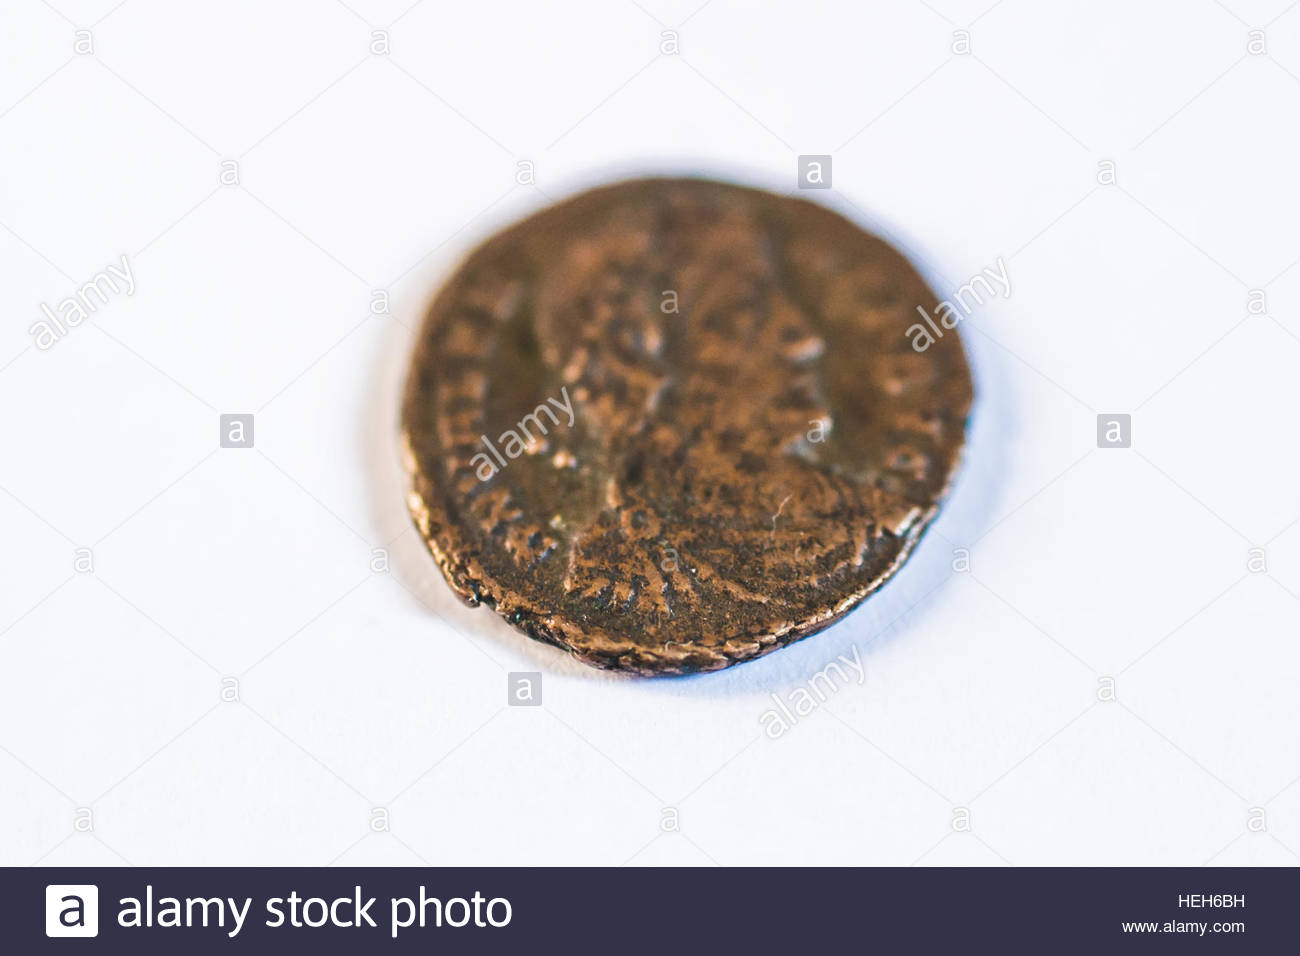 Roman coins  Old coins  Rare  Historical Stock Photo: 129455973 - Alamy